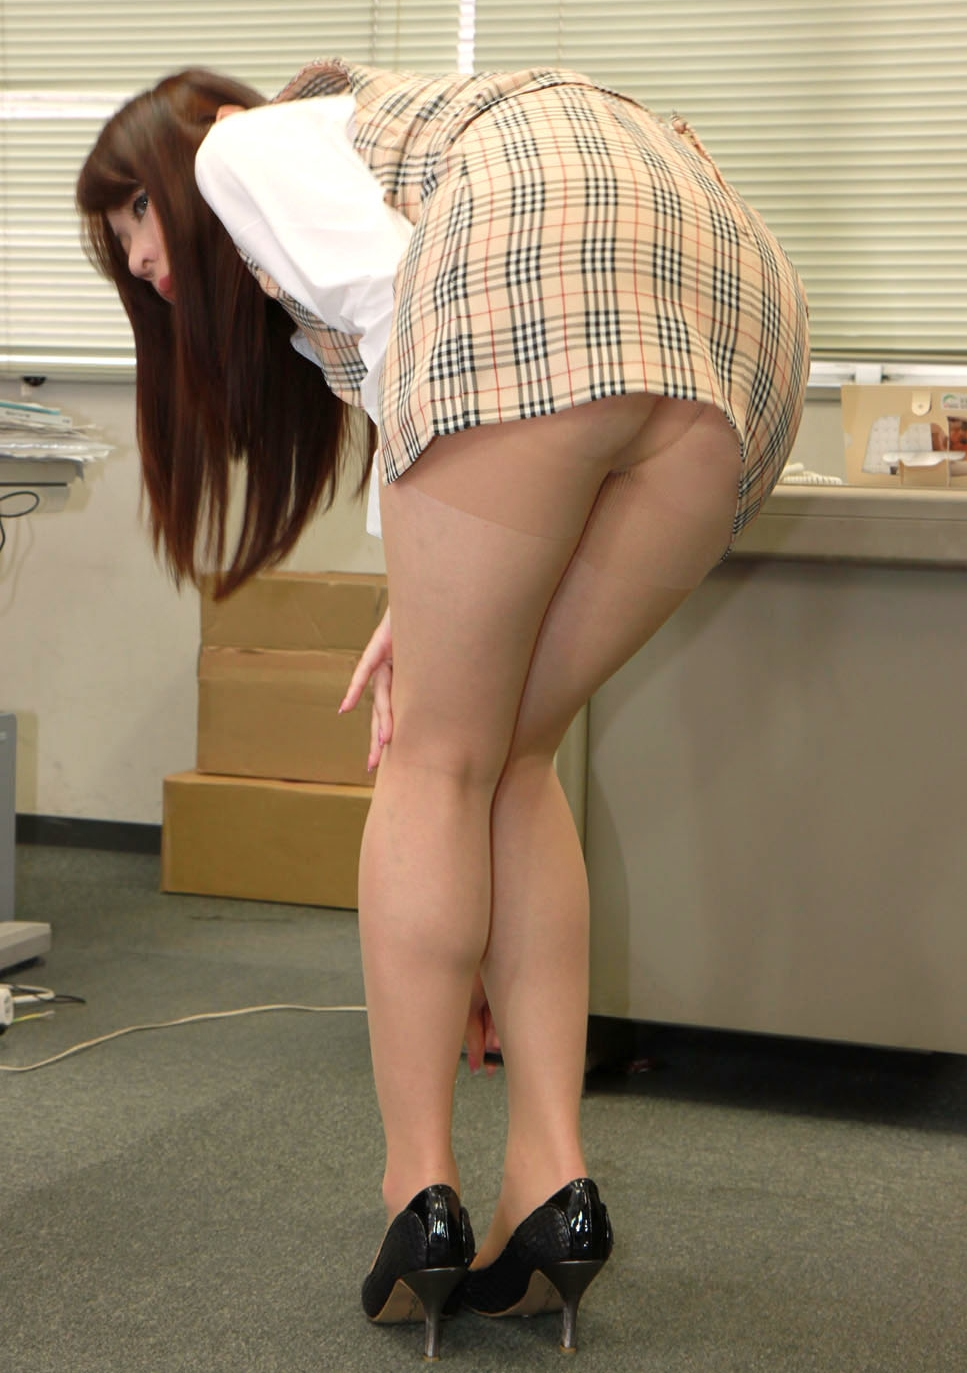 Pantyhose schoolgirl uniform sex opinion